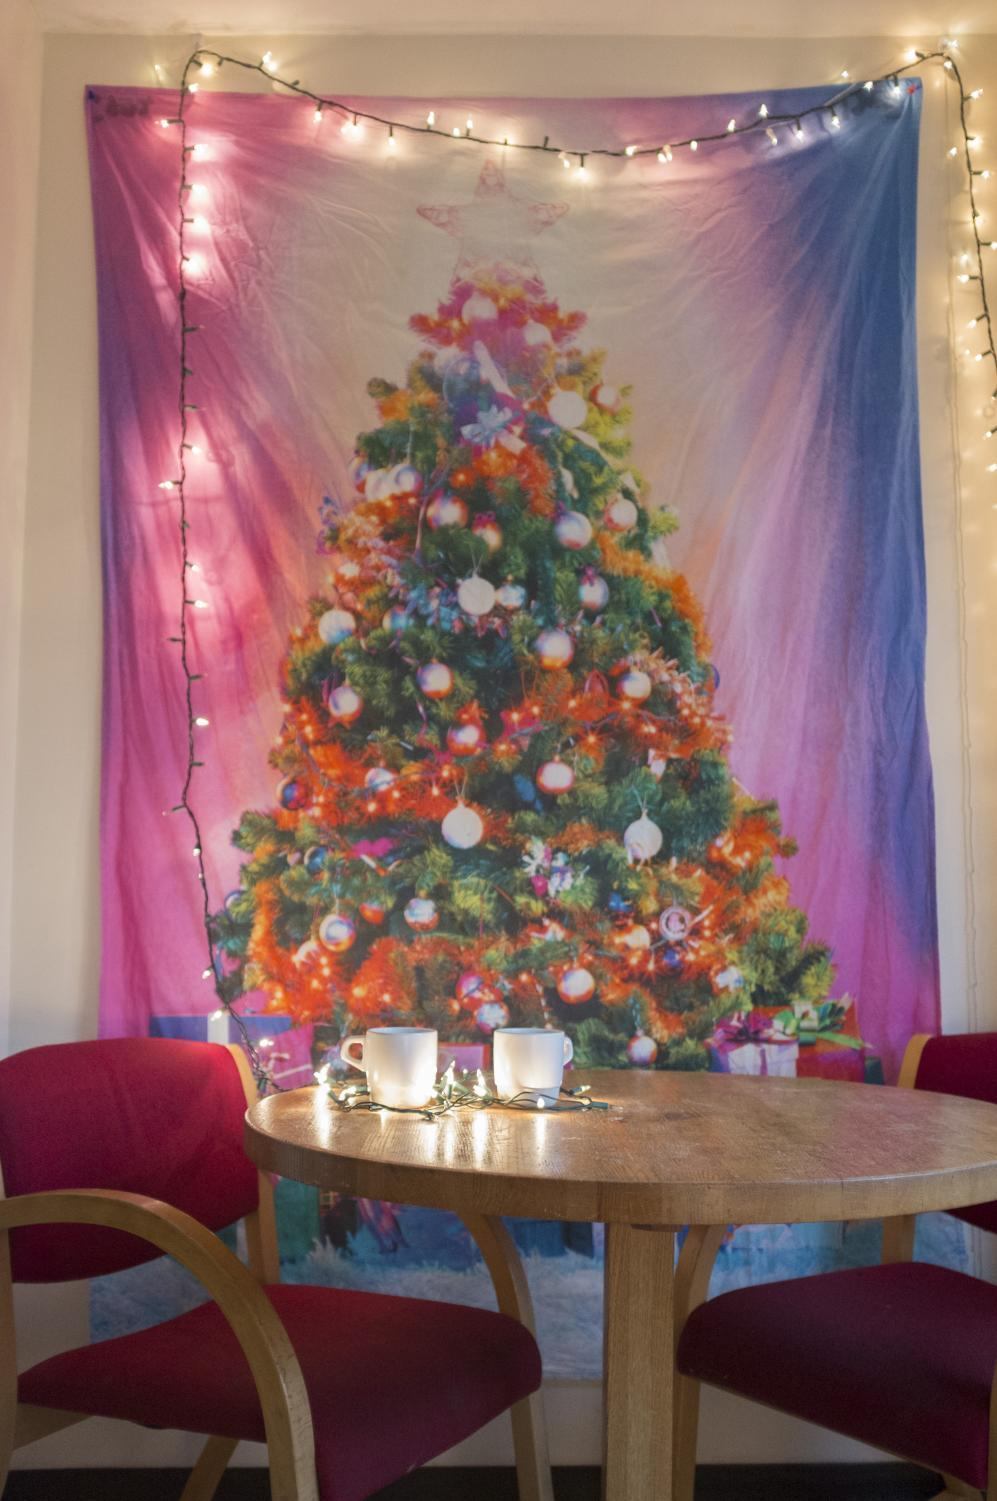 festive tapestries are one way to decorate your dorm to celebrate christmas - Christmas Dorm Decorations